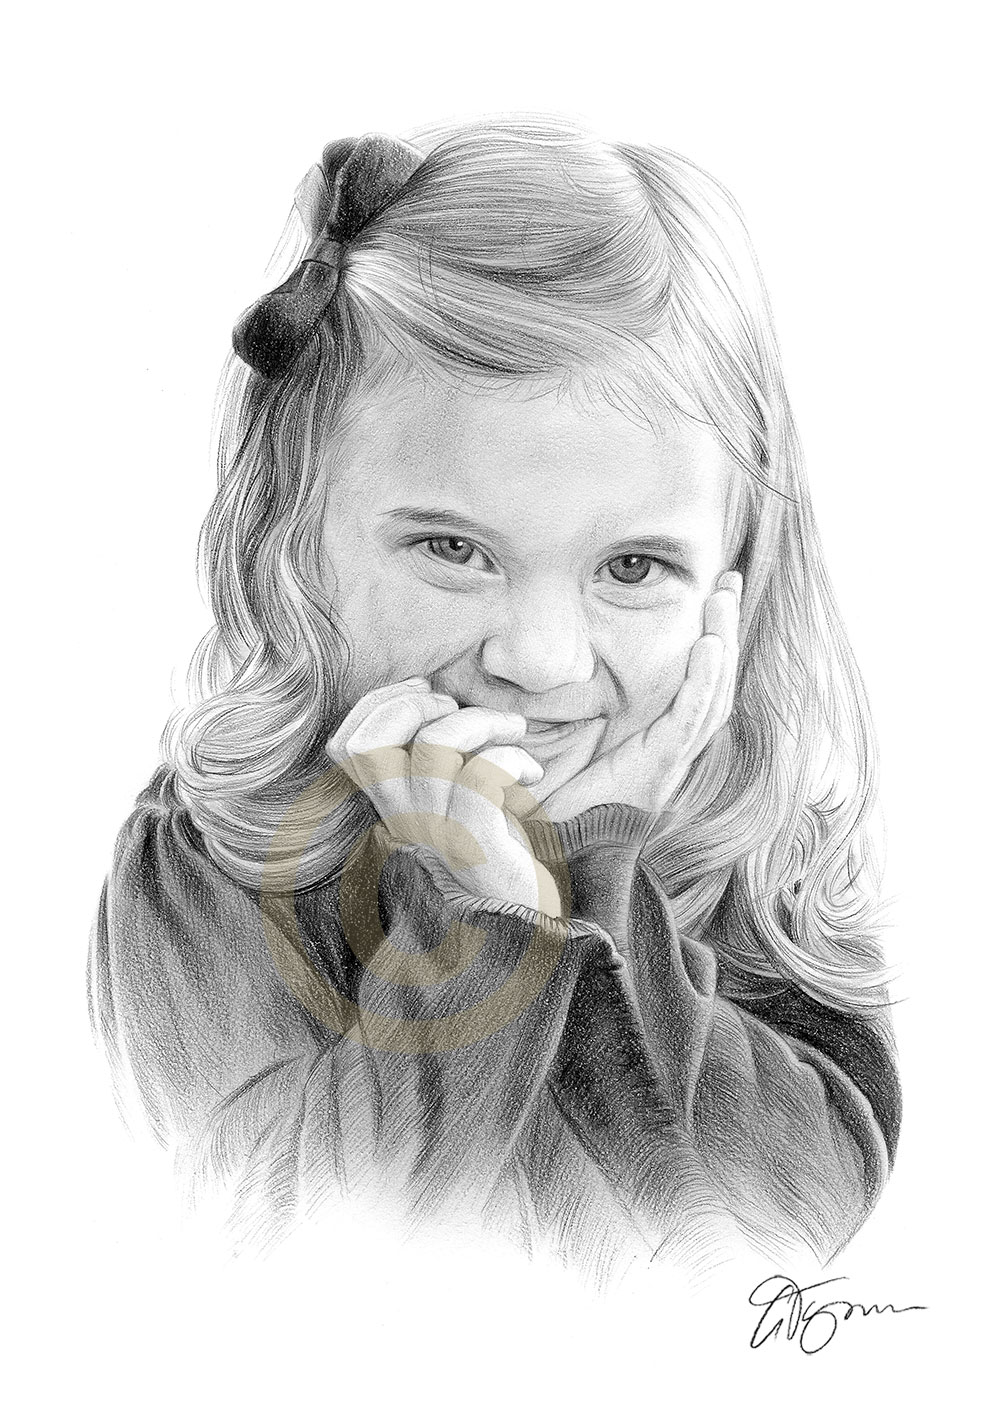 Pencil drawing commission of a young girl by artist Gary Tymon